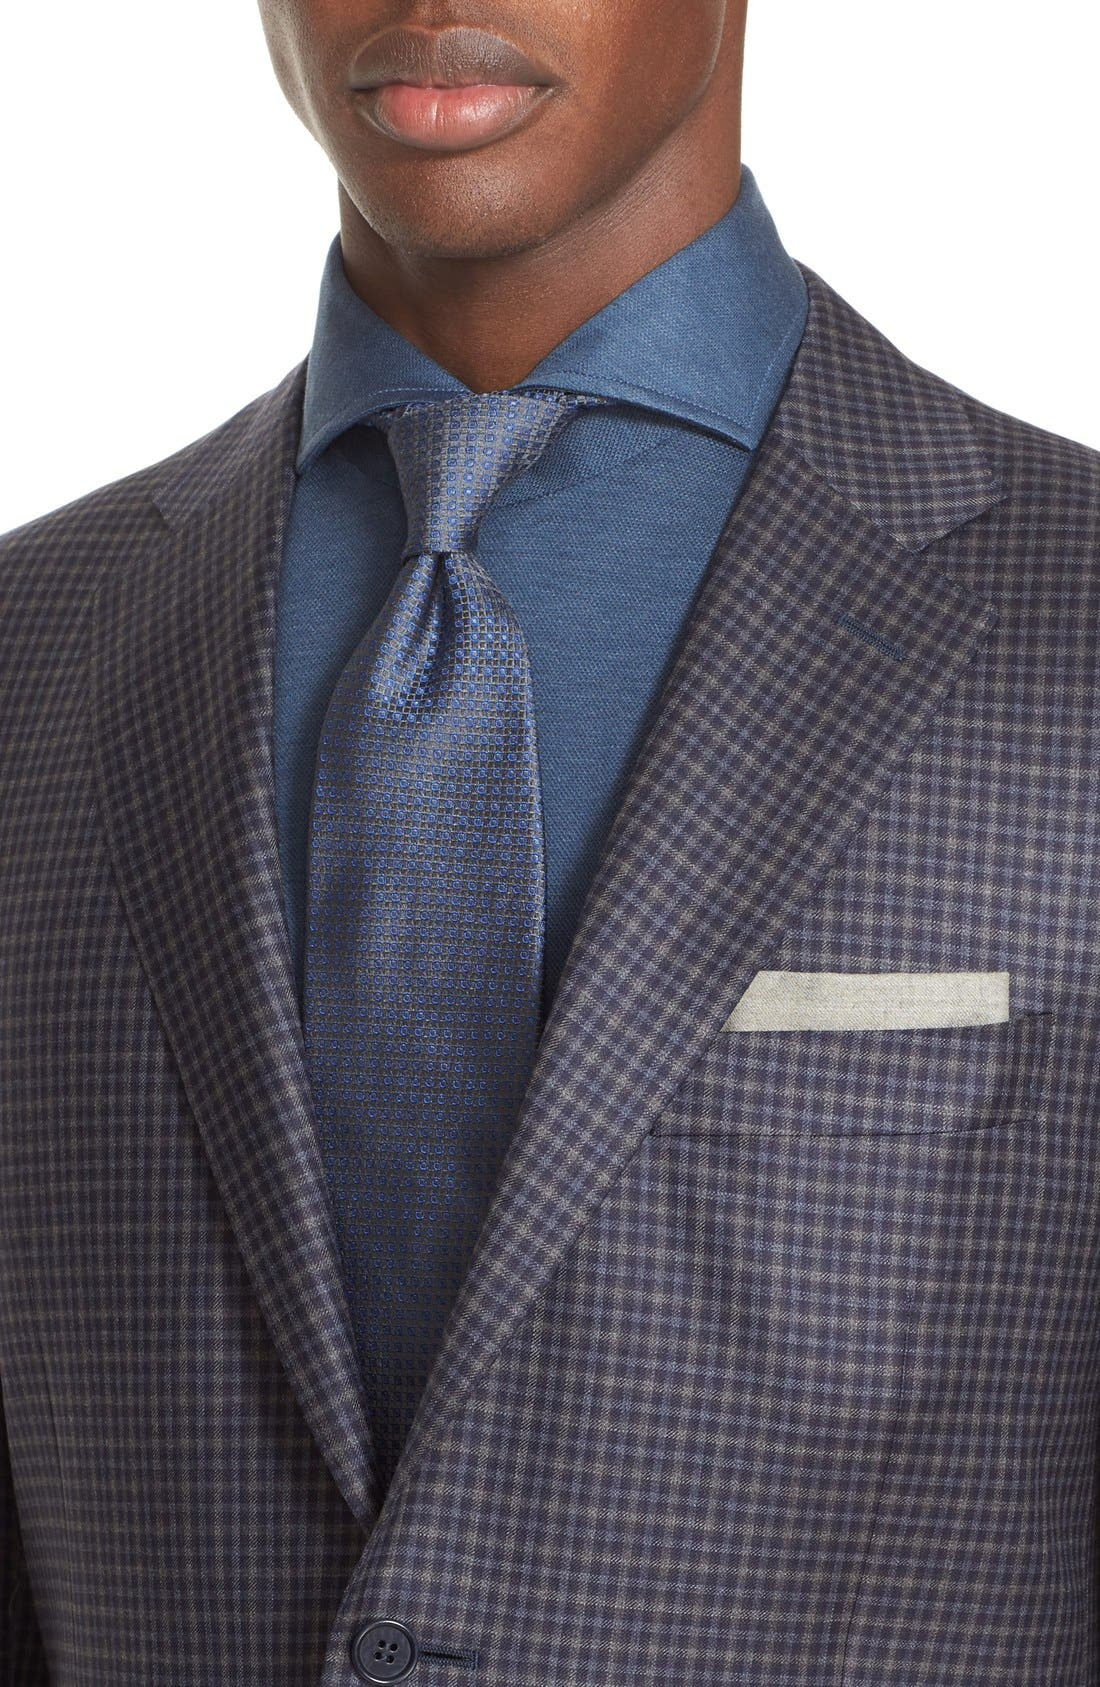 Classic Fit Check Wool Sport Coat,                             Alternate thumbnail 4, color,                             404